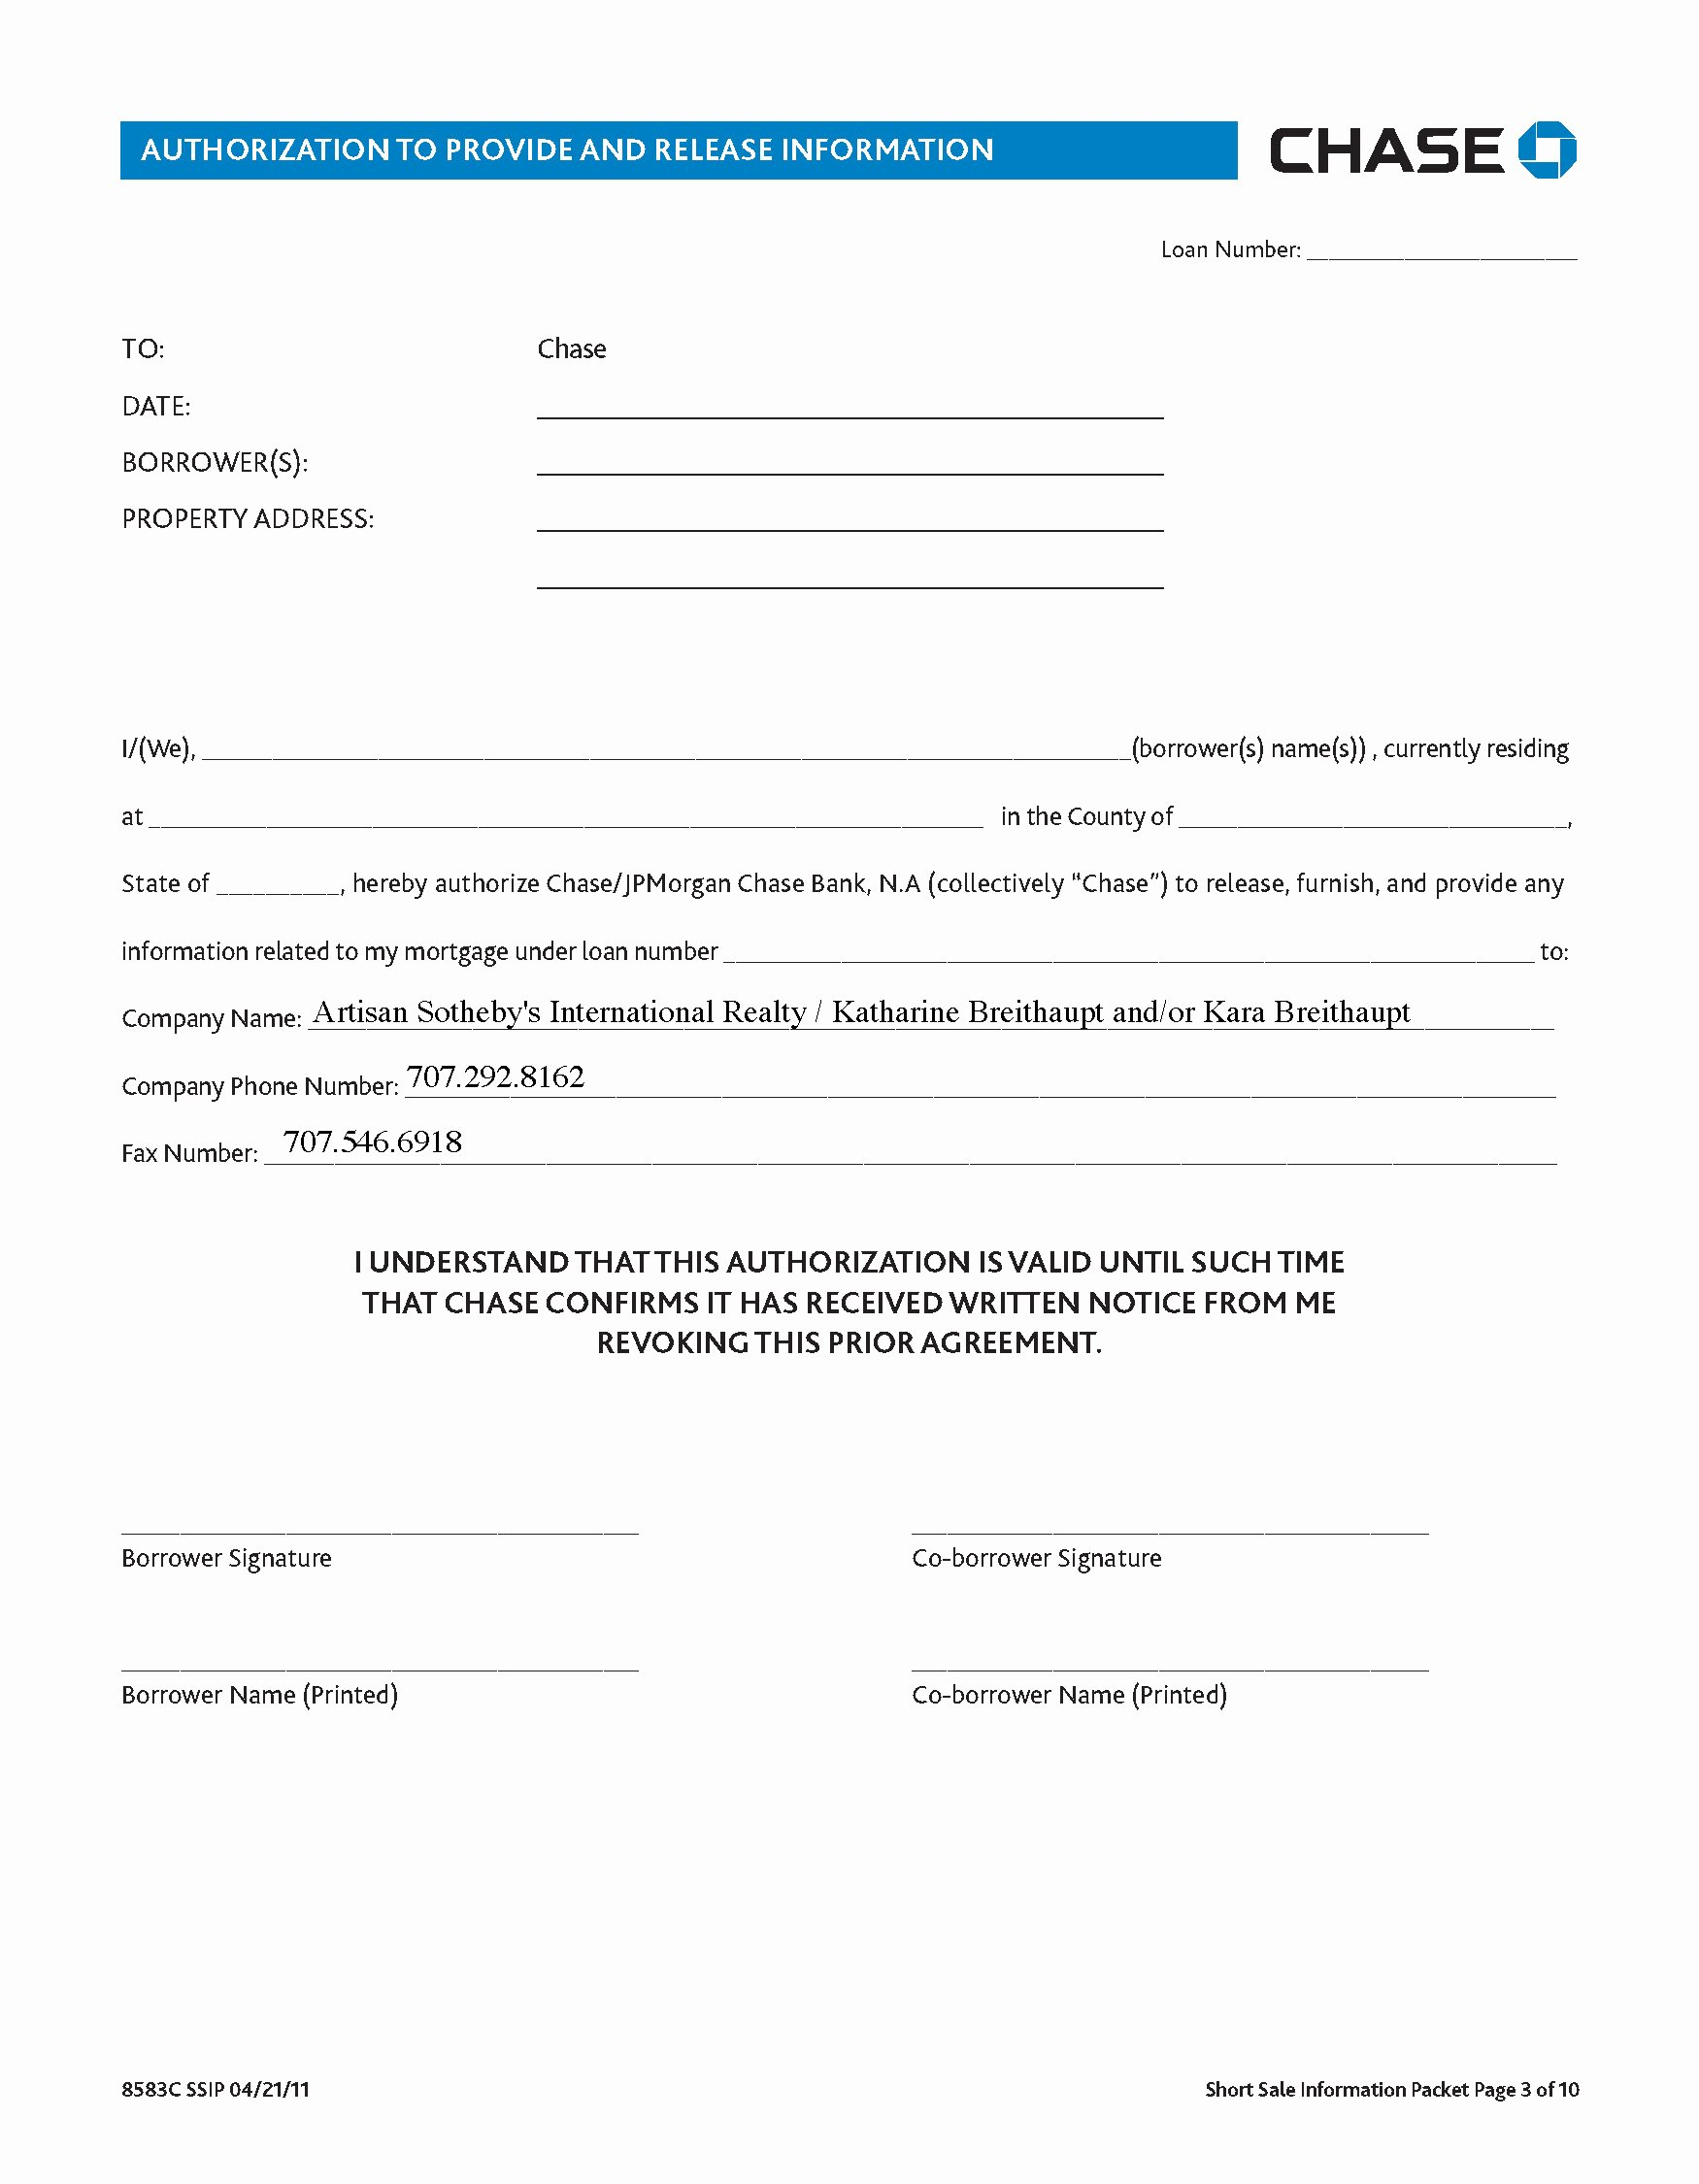 3rd Party Authorization form Template Best Of Templates—3rd Party Authorization